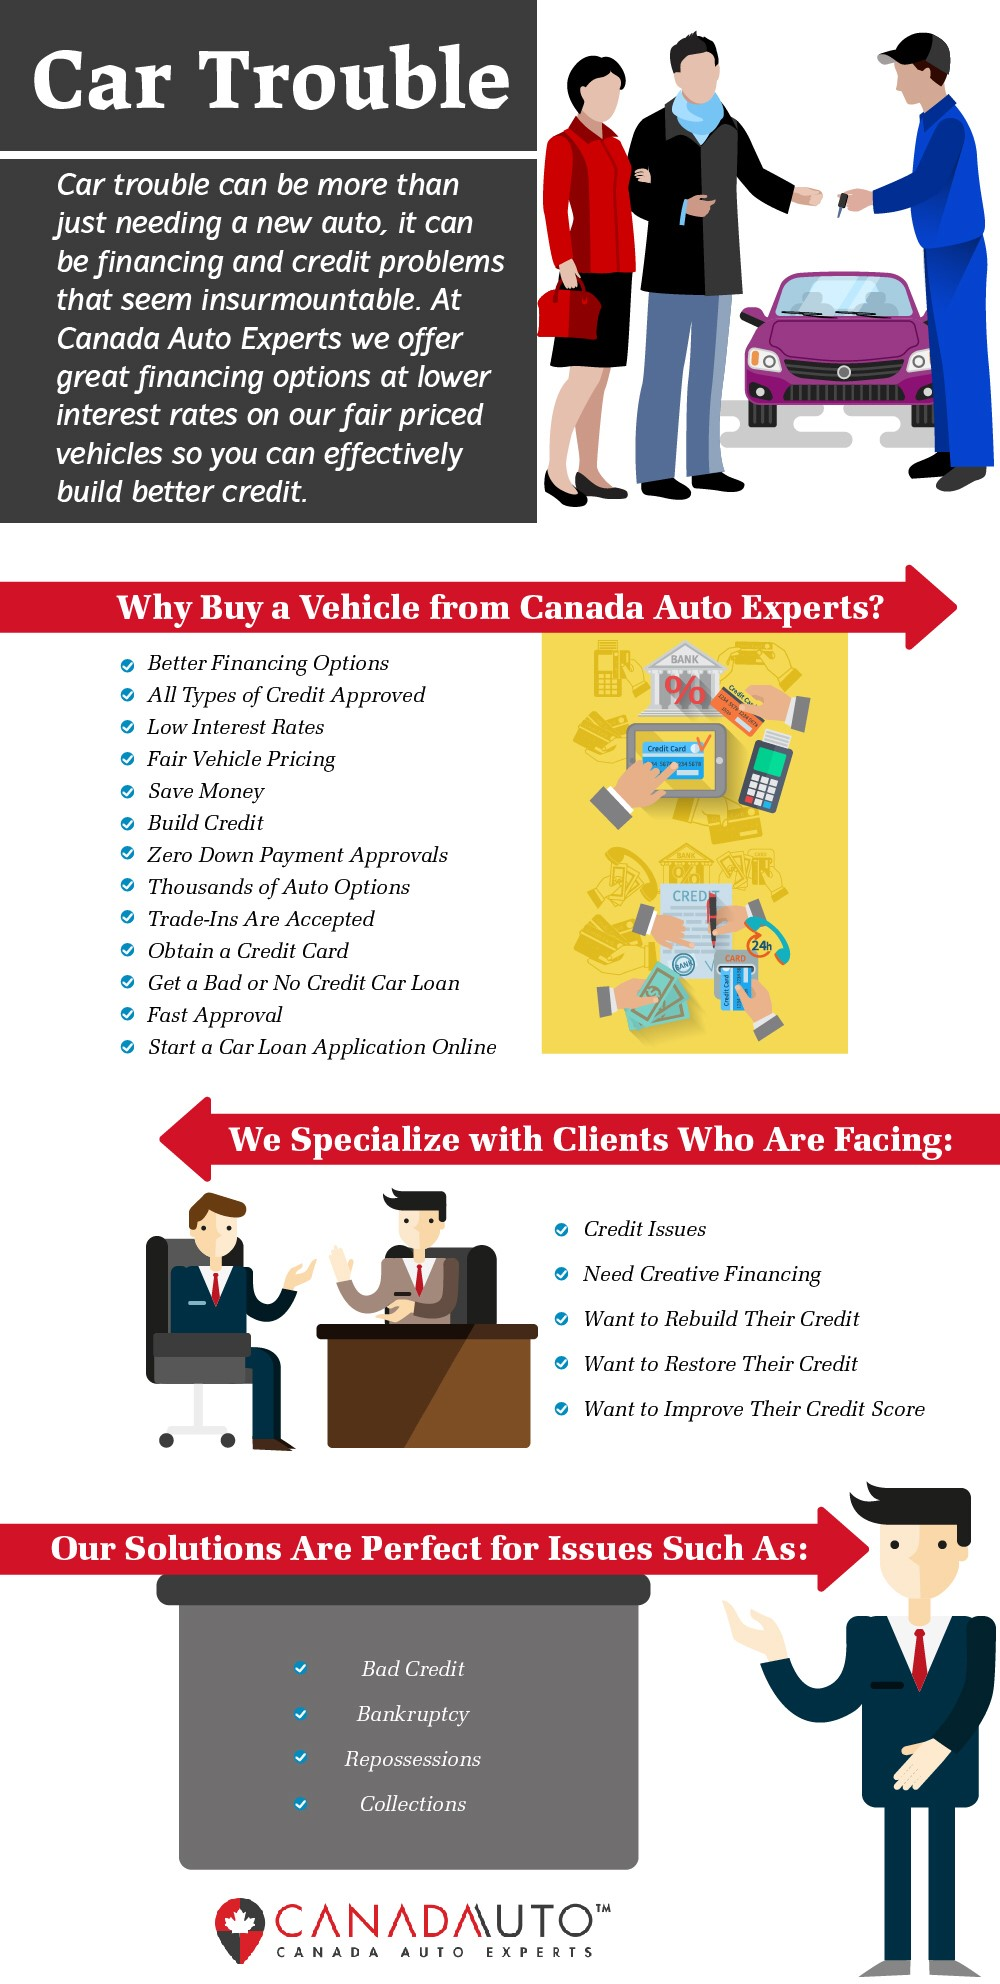 Reasons to Buy a Vehicle from Canada Auto Experts